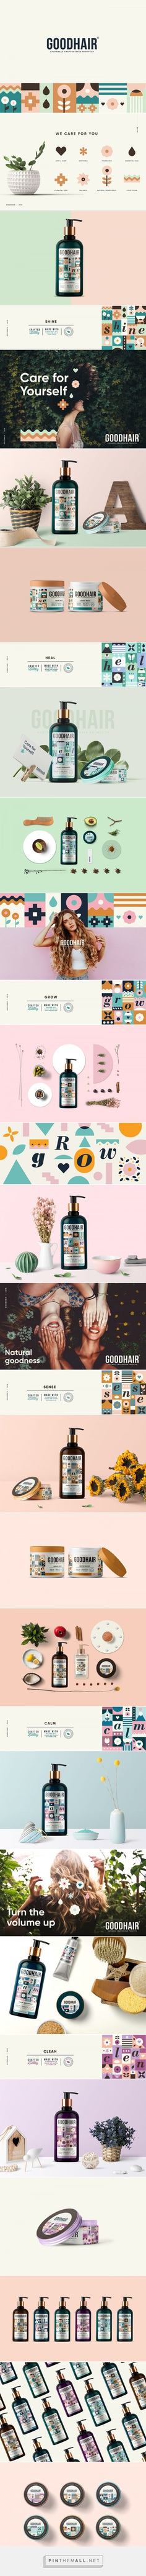 GoodHair Naturally Crafted Hair Product Packaging by Meroo Seth